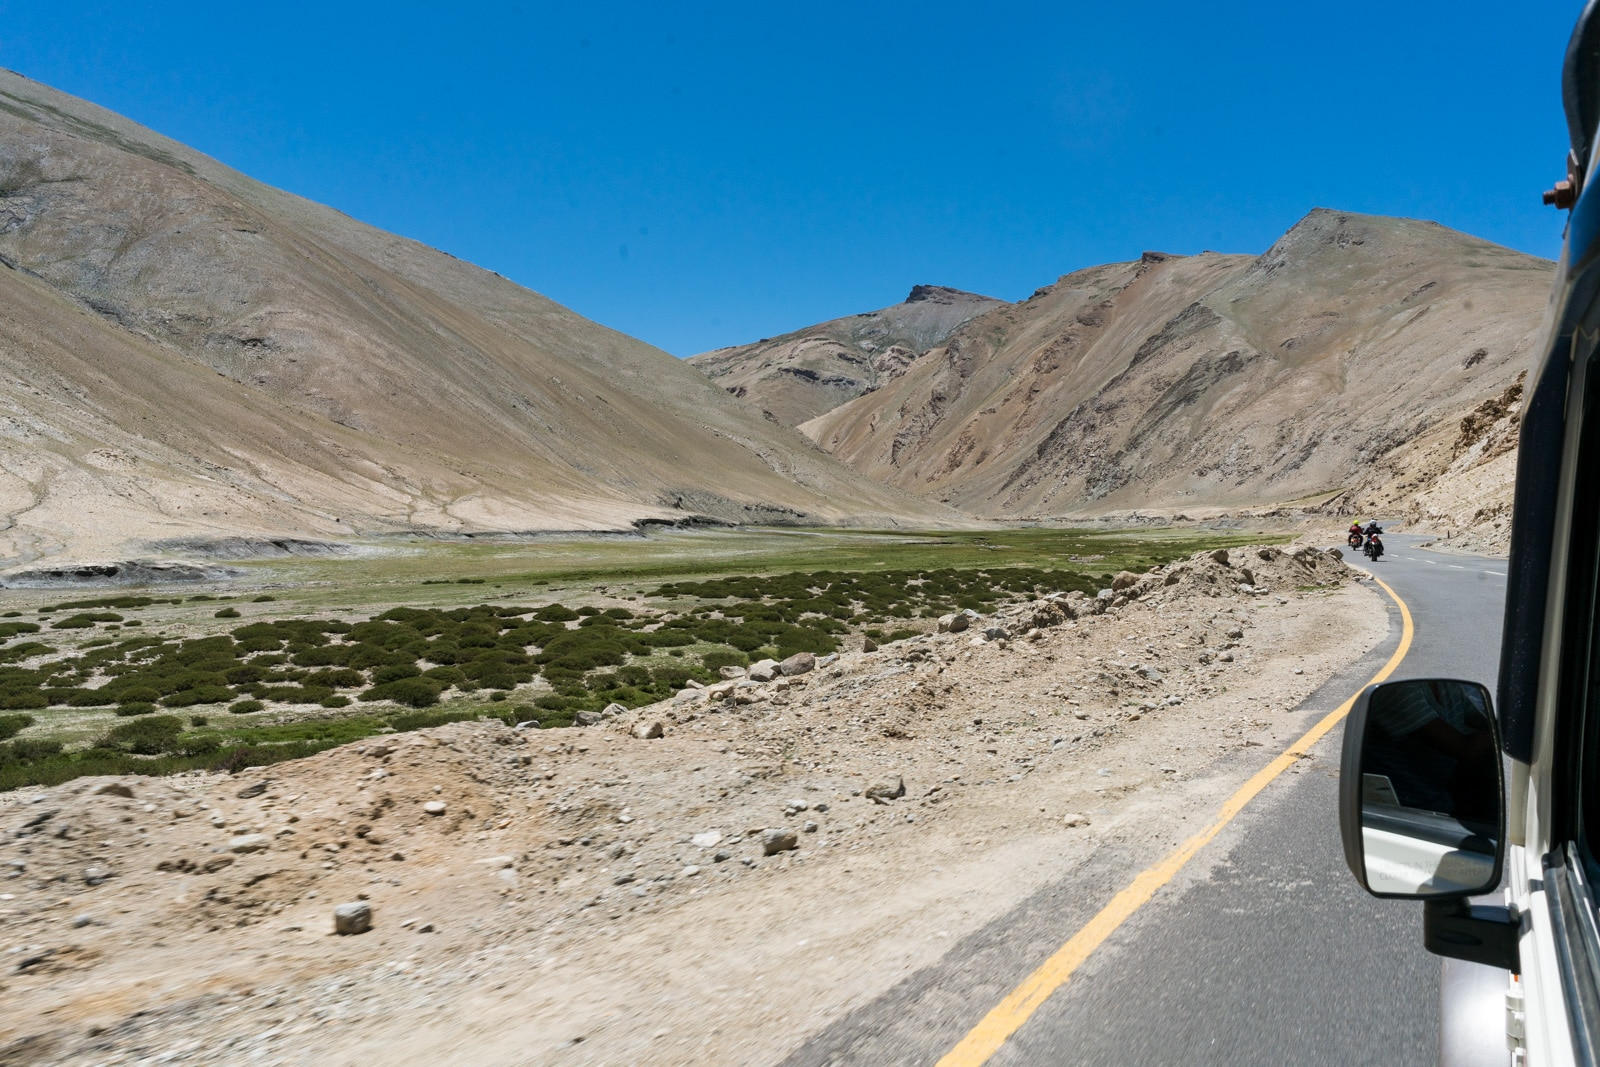 Hitchhiking the Leh - Manali highway - Lost With Purpose travel blog